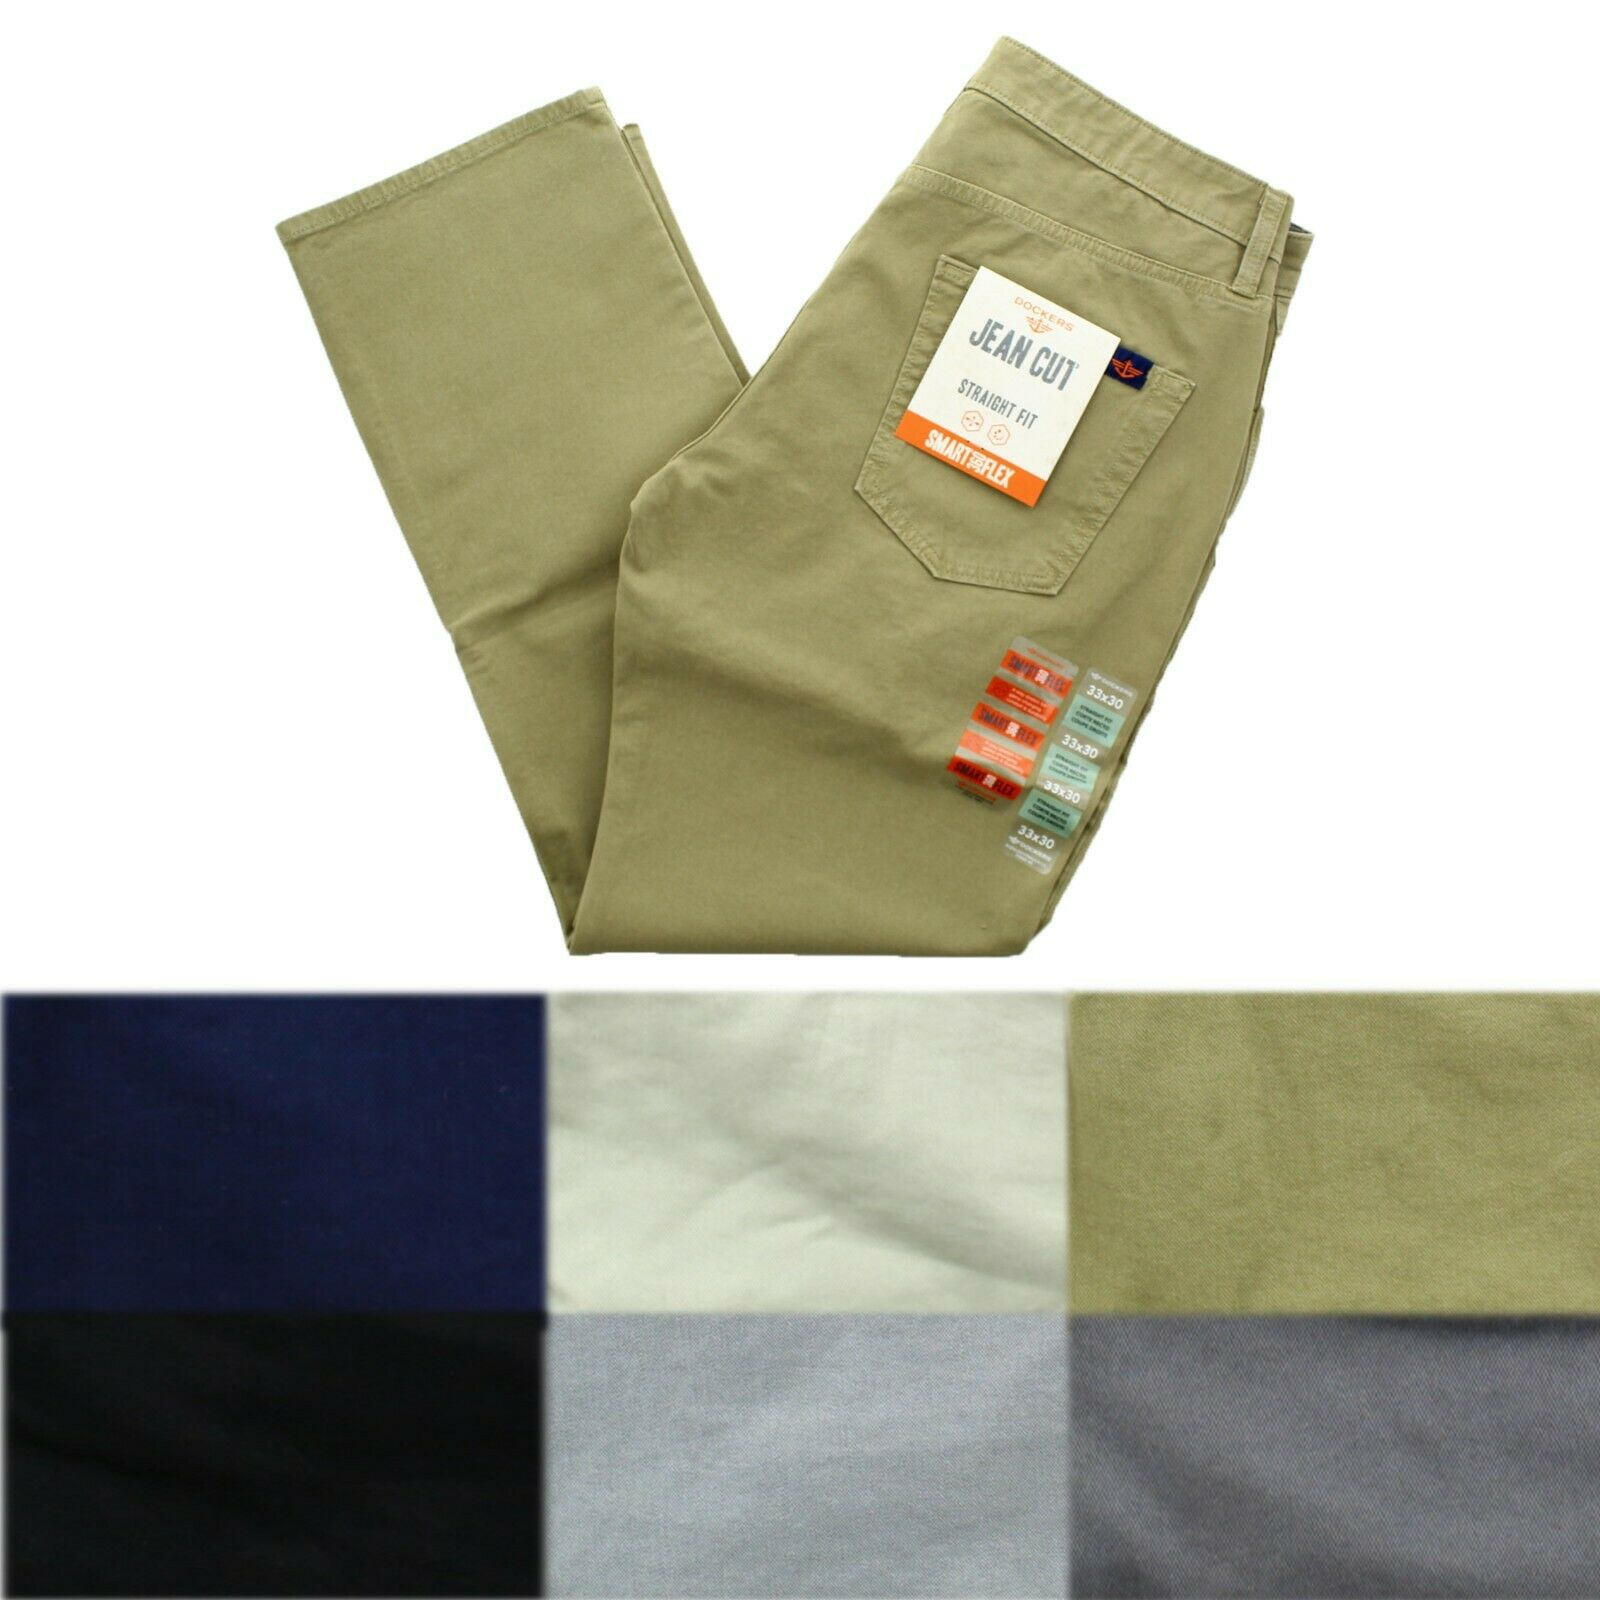 fine quality extremely unique how to serch Dockers Men's Jean Cut Straight Fit 4 Way Stretch Comfort Smart Flex 360  Pants